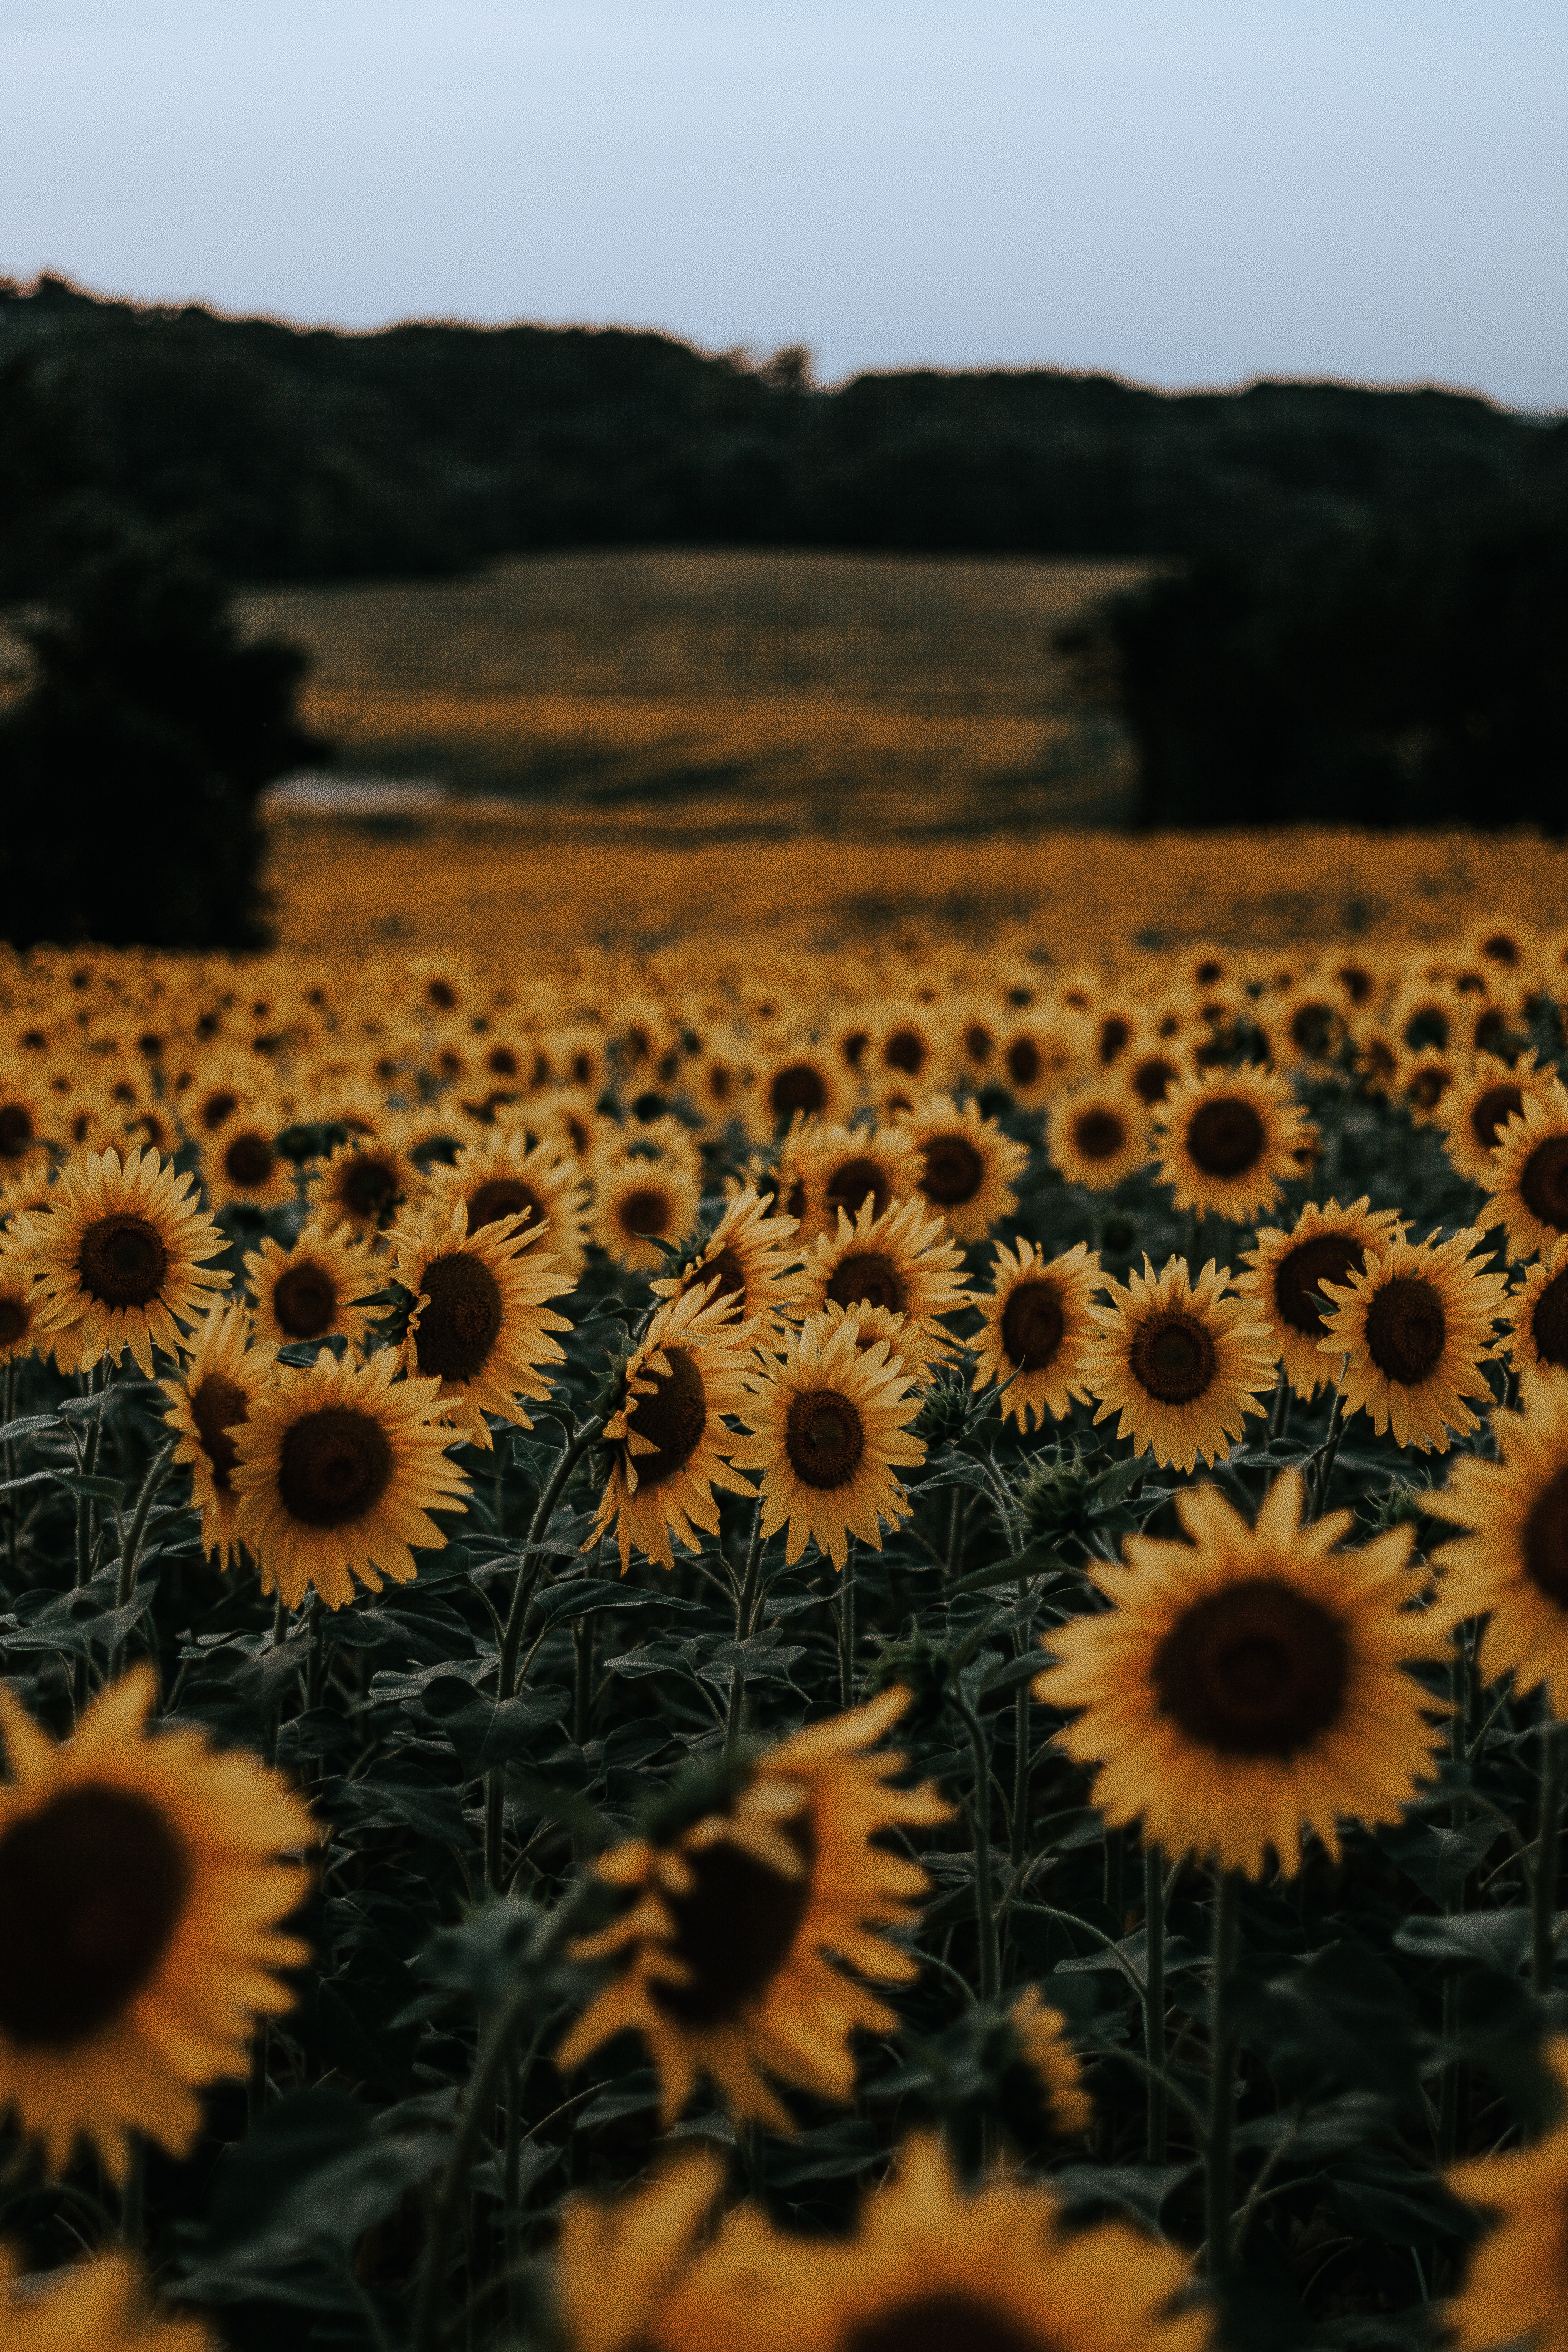 Sunflower Wallpapers: Free HD Download